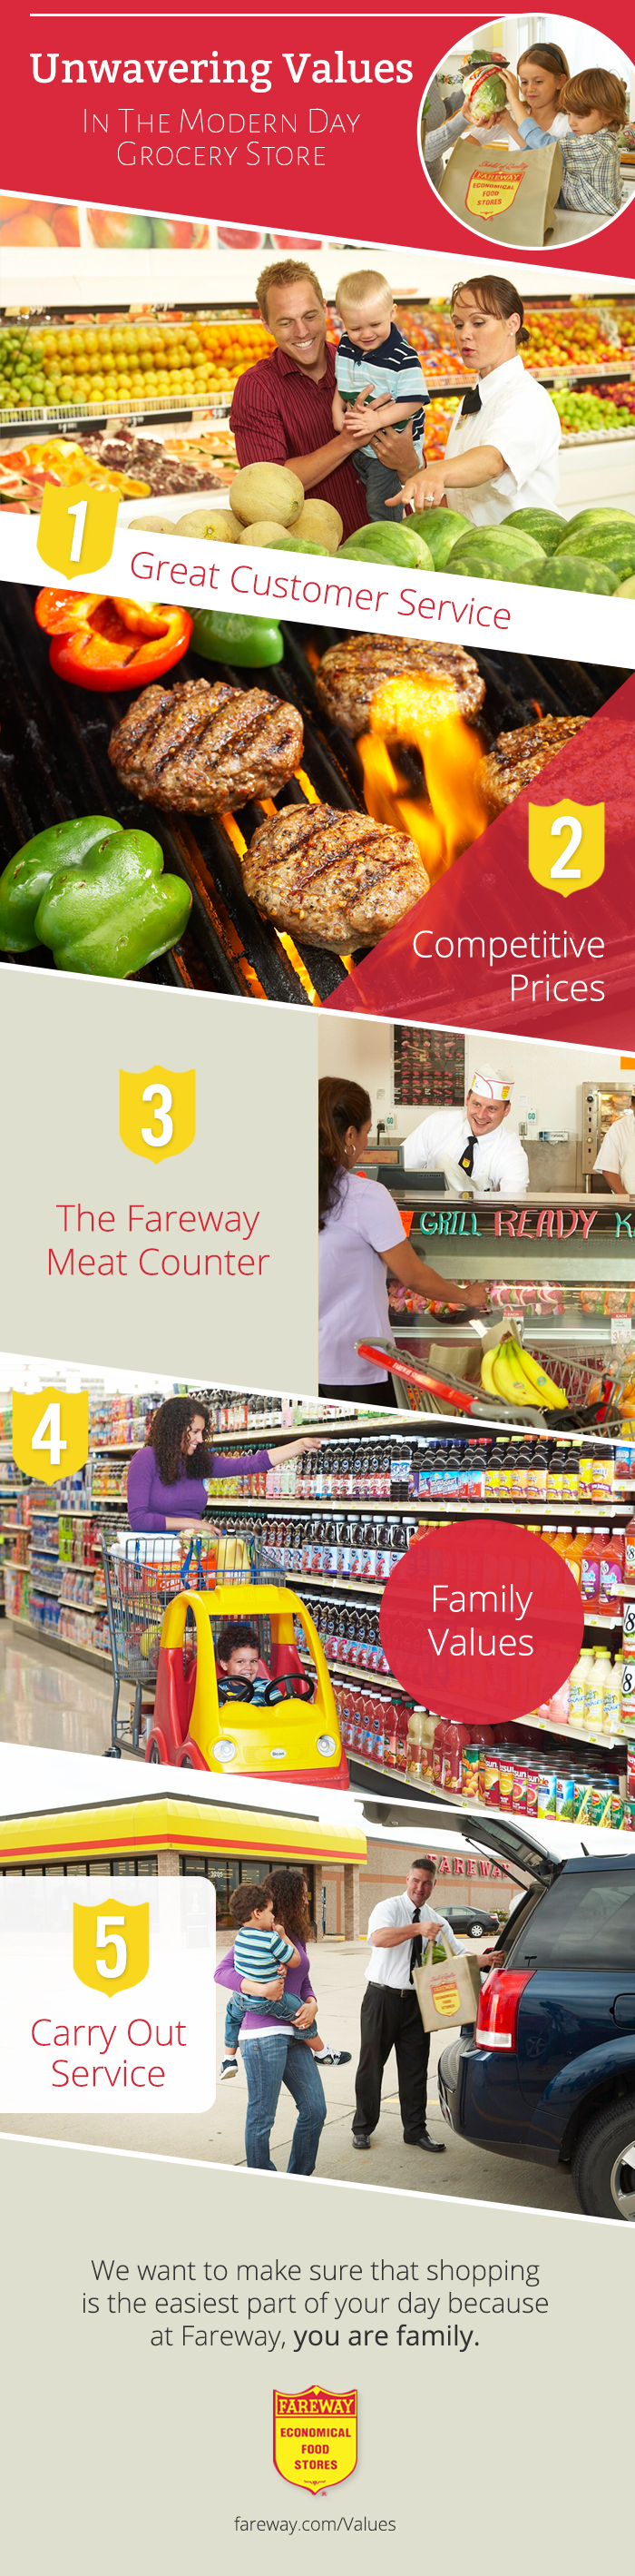 Fareway remains true to its values of customer service, competitive prices, a friendly meat counter, family, and helpful carry-out service